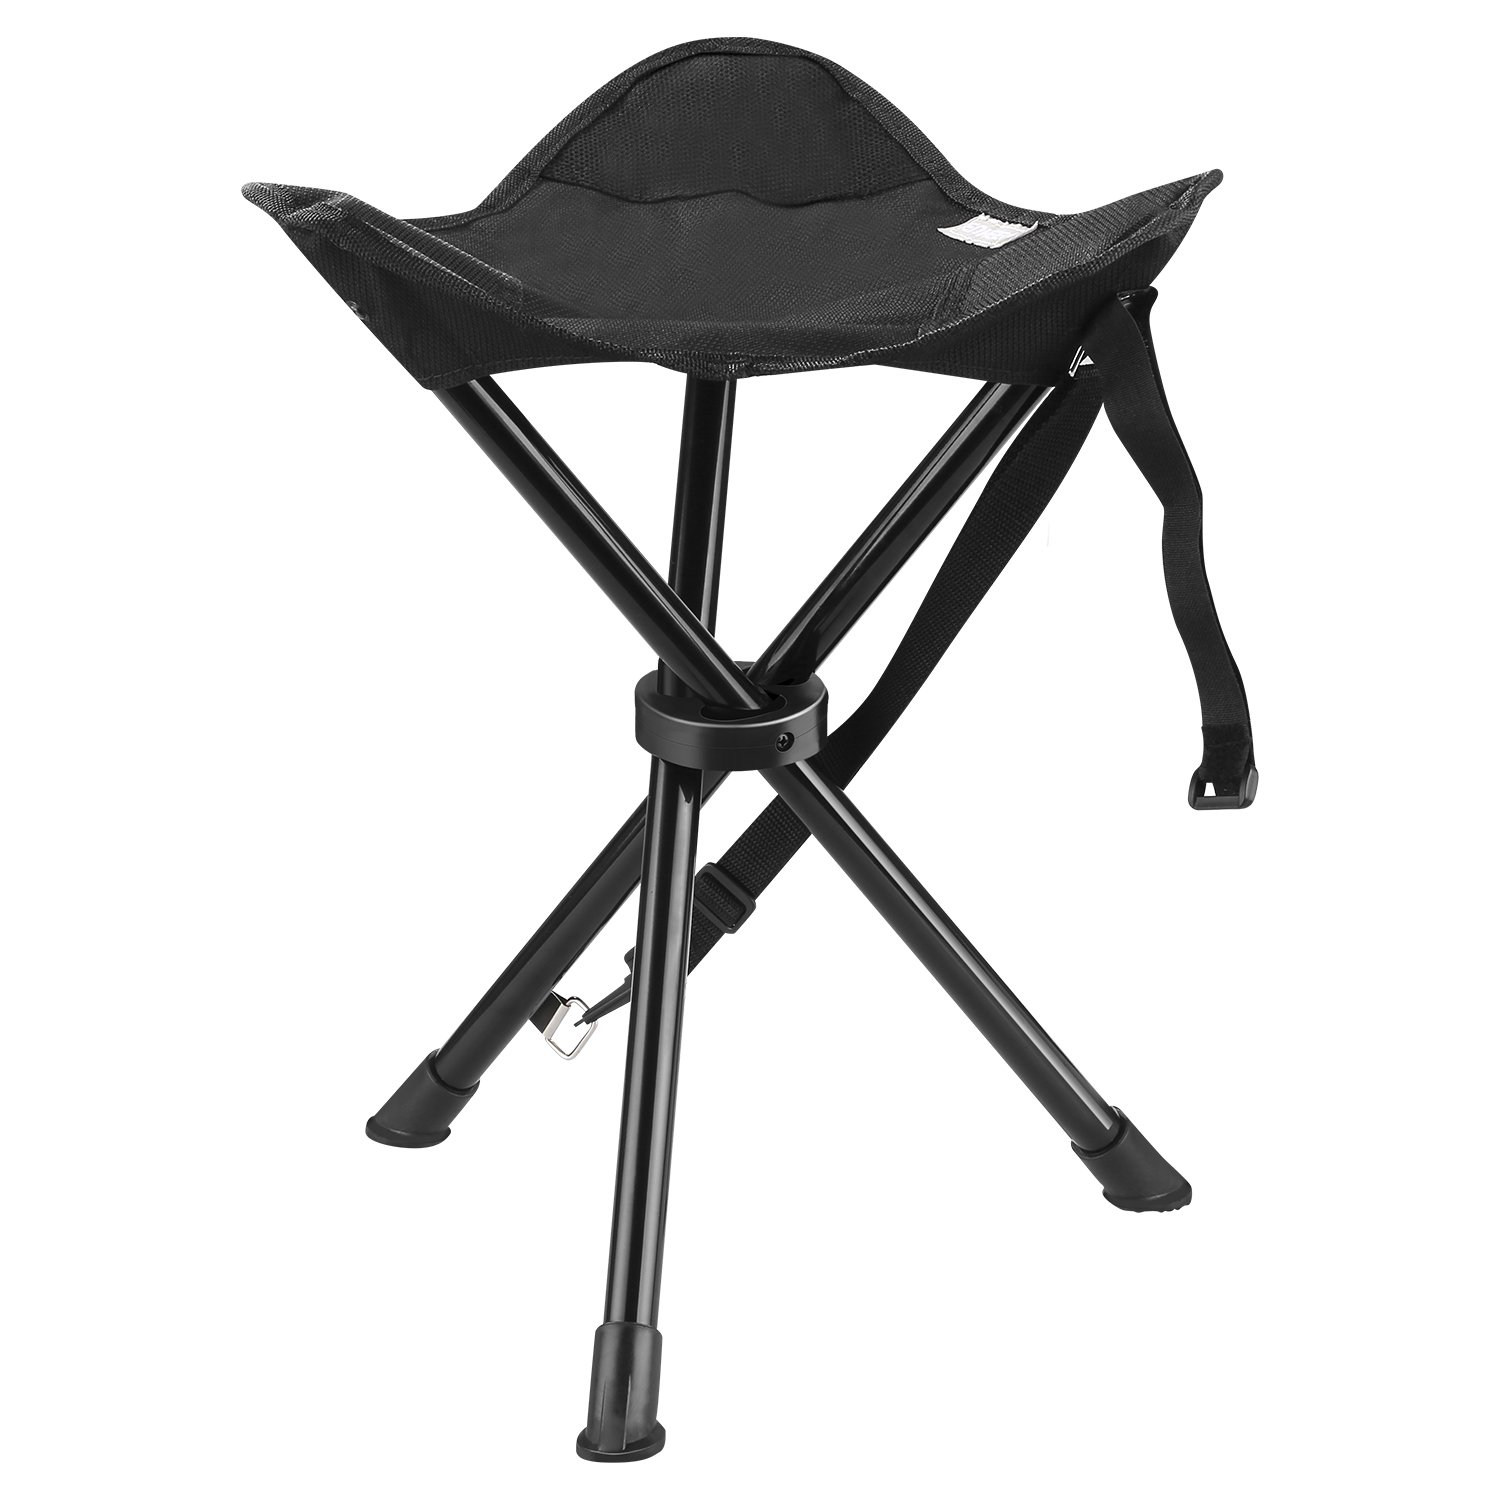 ENKEEO Portable Tripod Stool Folding Chair with Carrying Case for Outdoor Camping Walking Hunting Hiking Fishing Travel, 200 lbs. Capacity